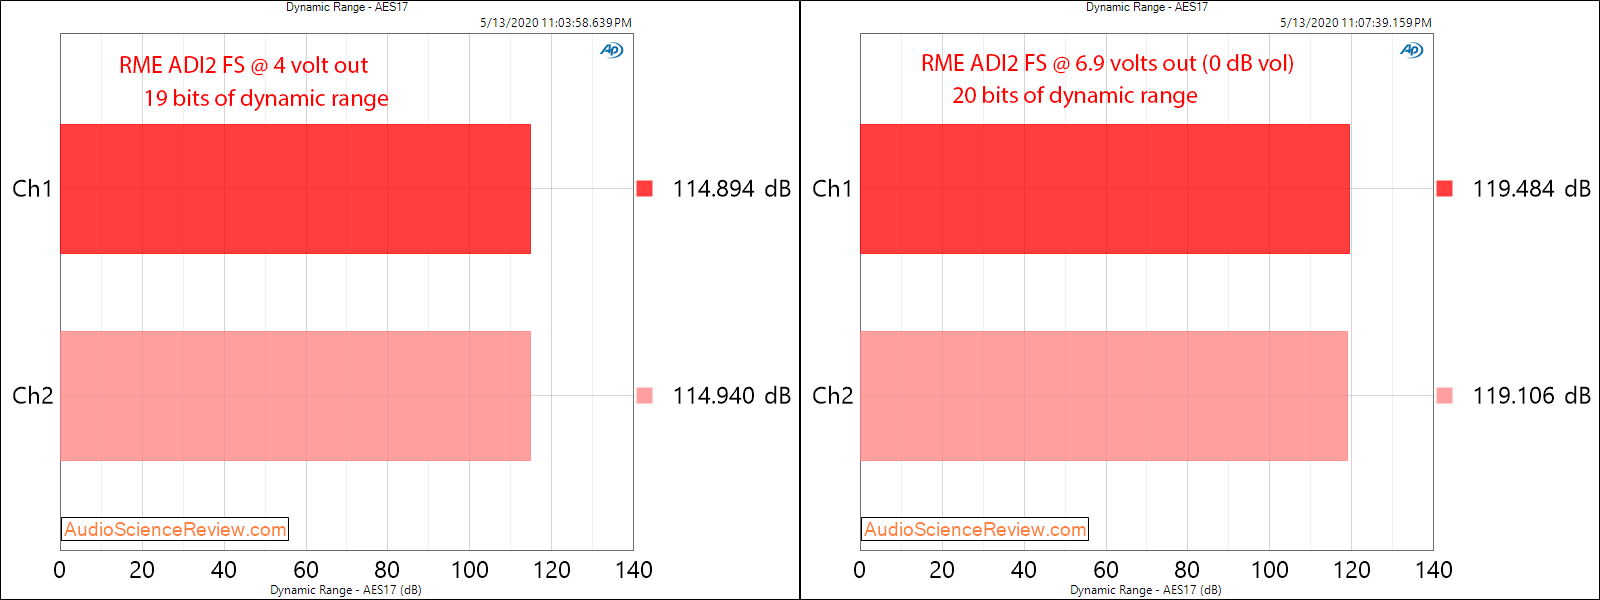 RME ADI-2 DAC FS Version 2 USB Dynamic Range Audio Measurements.png